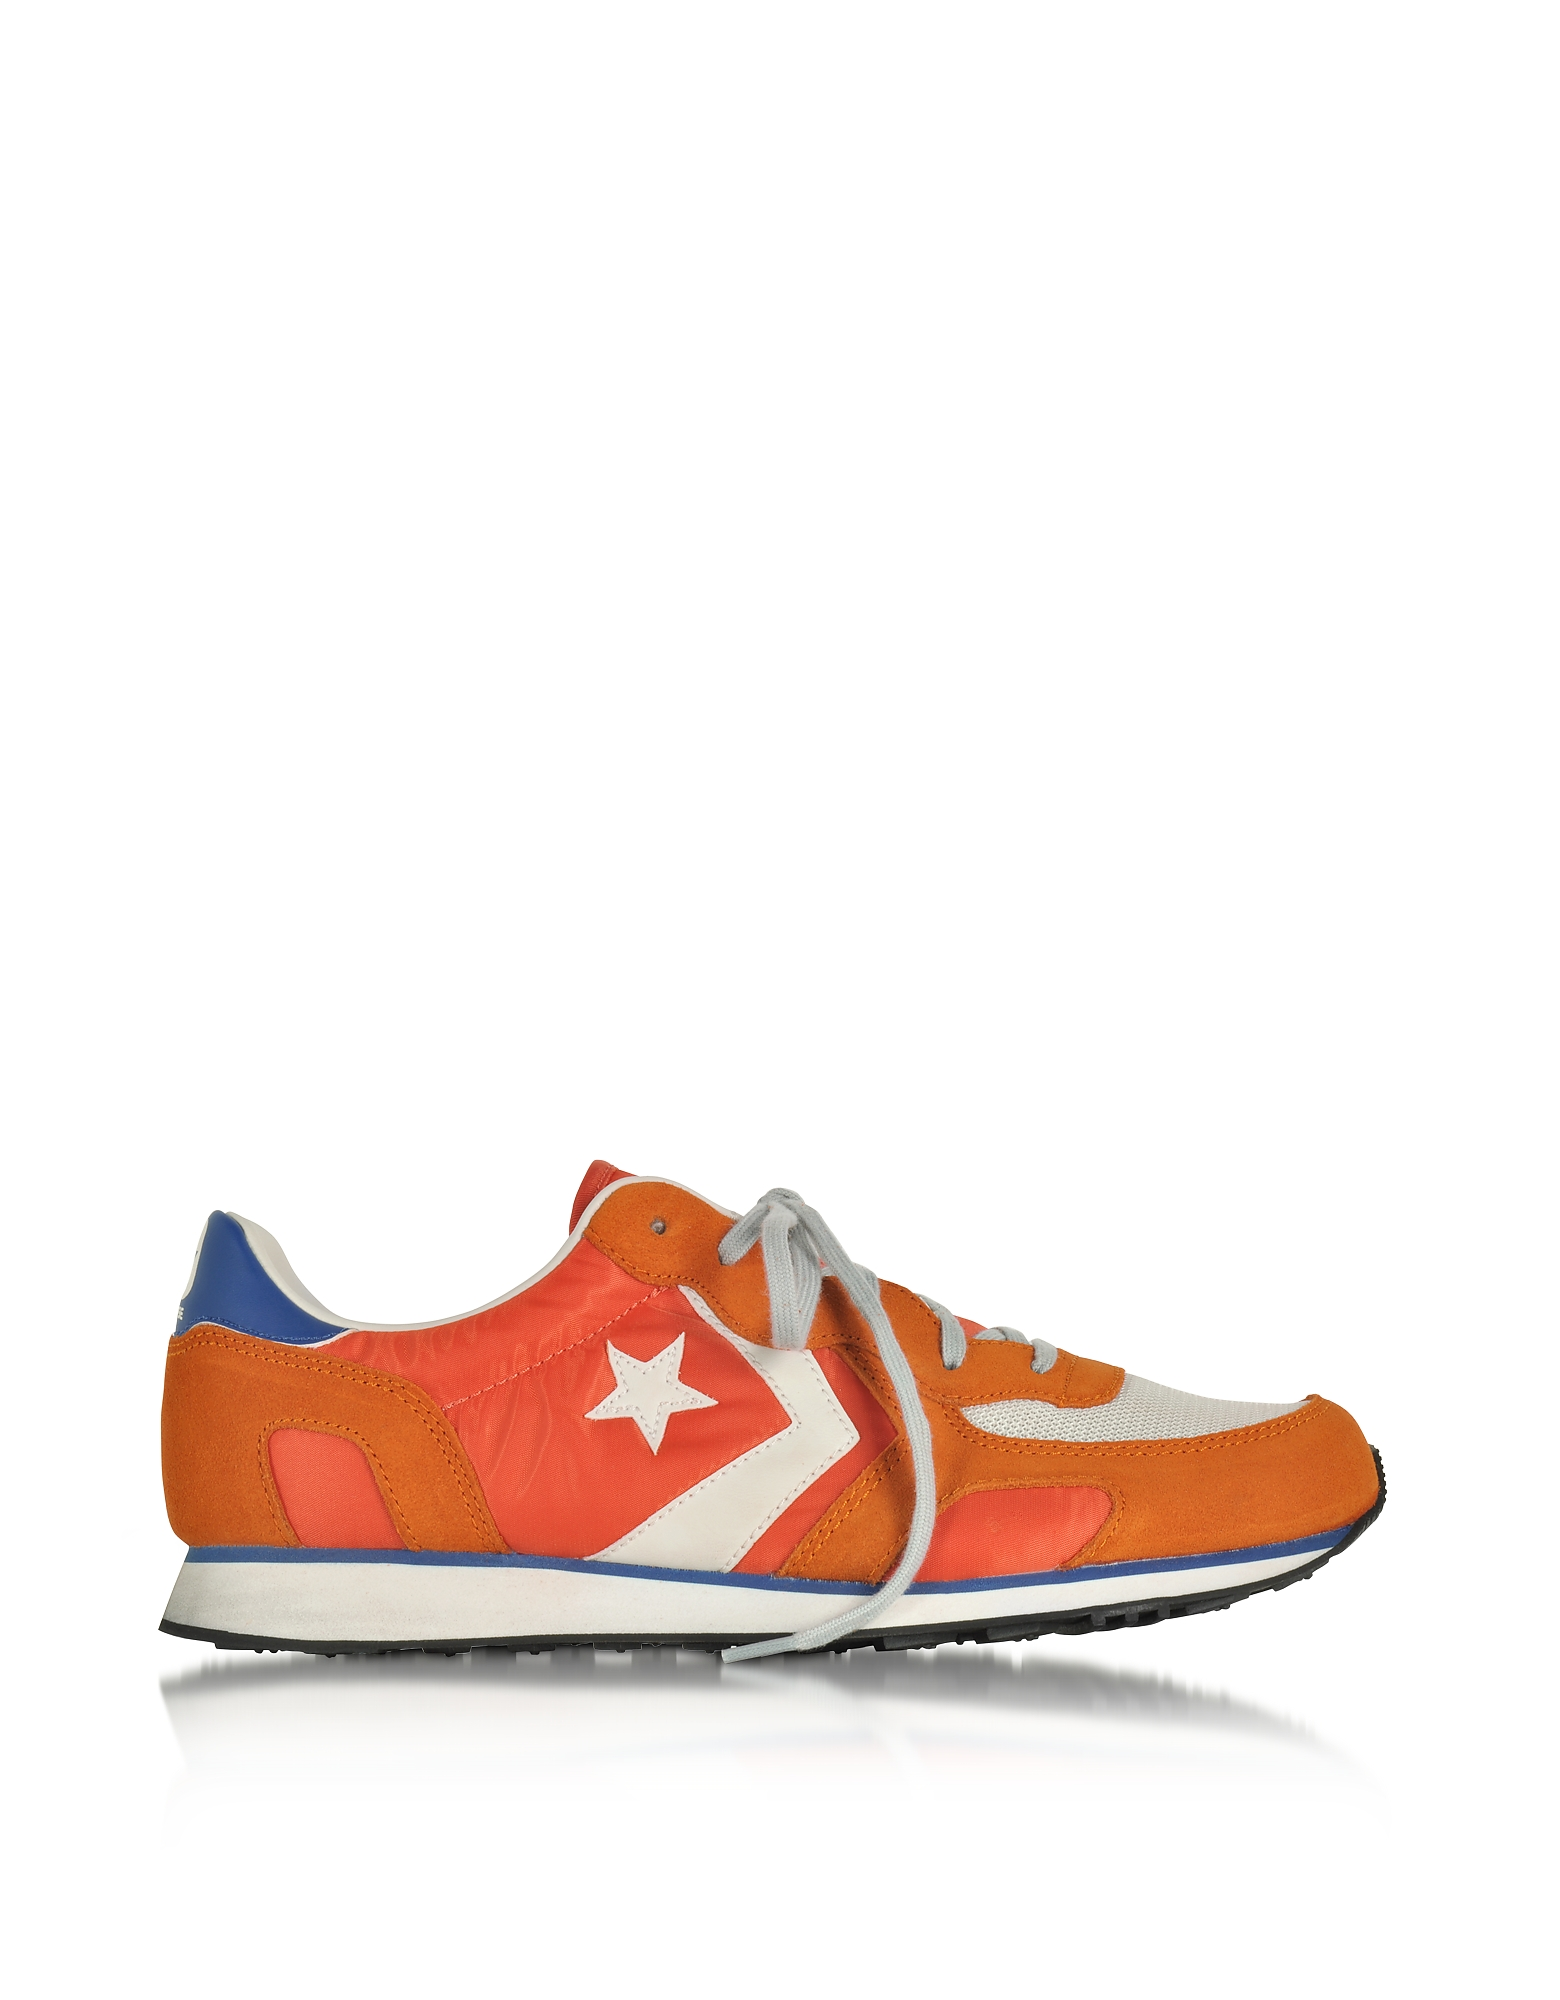 Converse Limited Edition Shoes, Auckland Racer Distressed Ox My Van Is On Fire Men's Sneakers